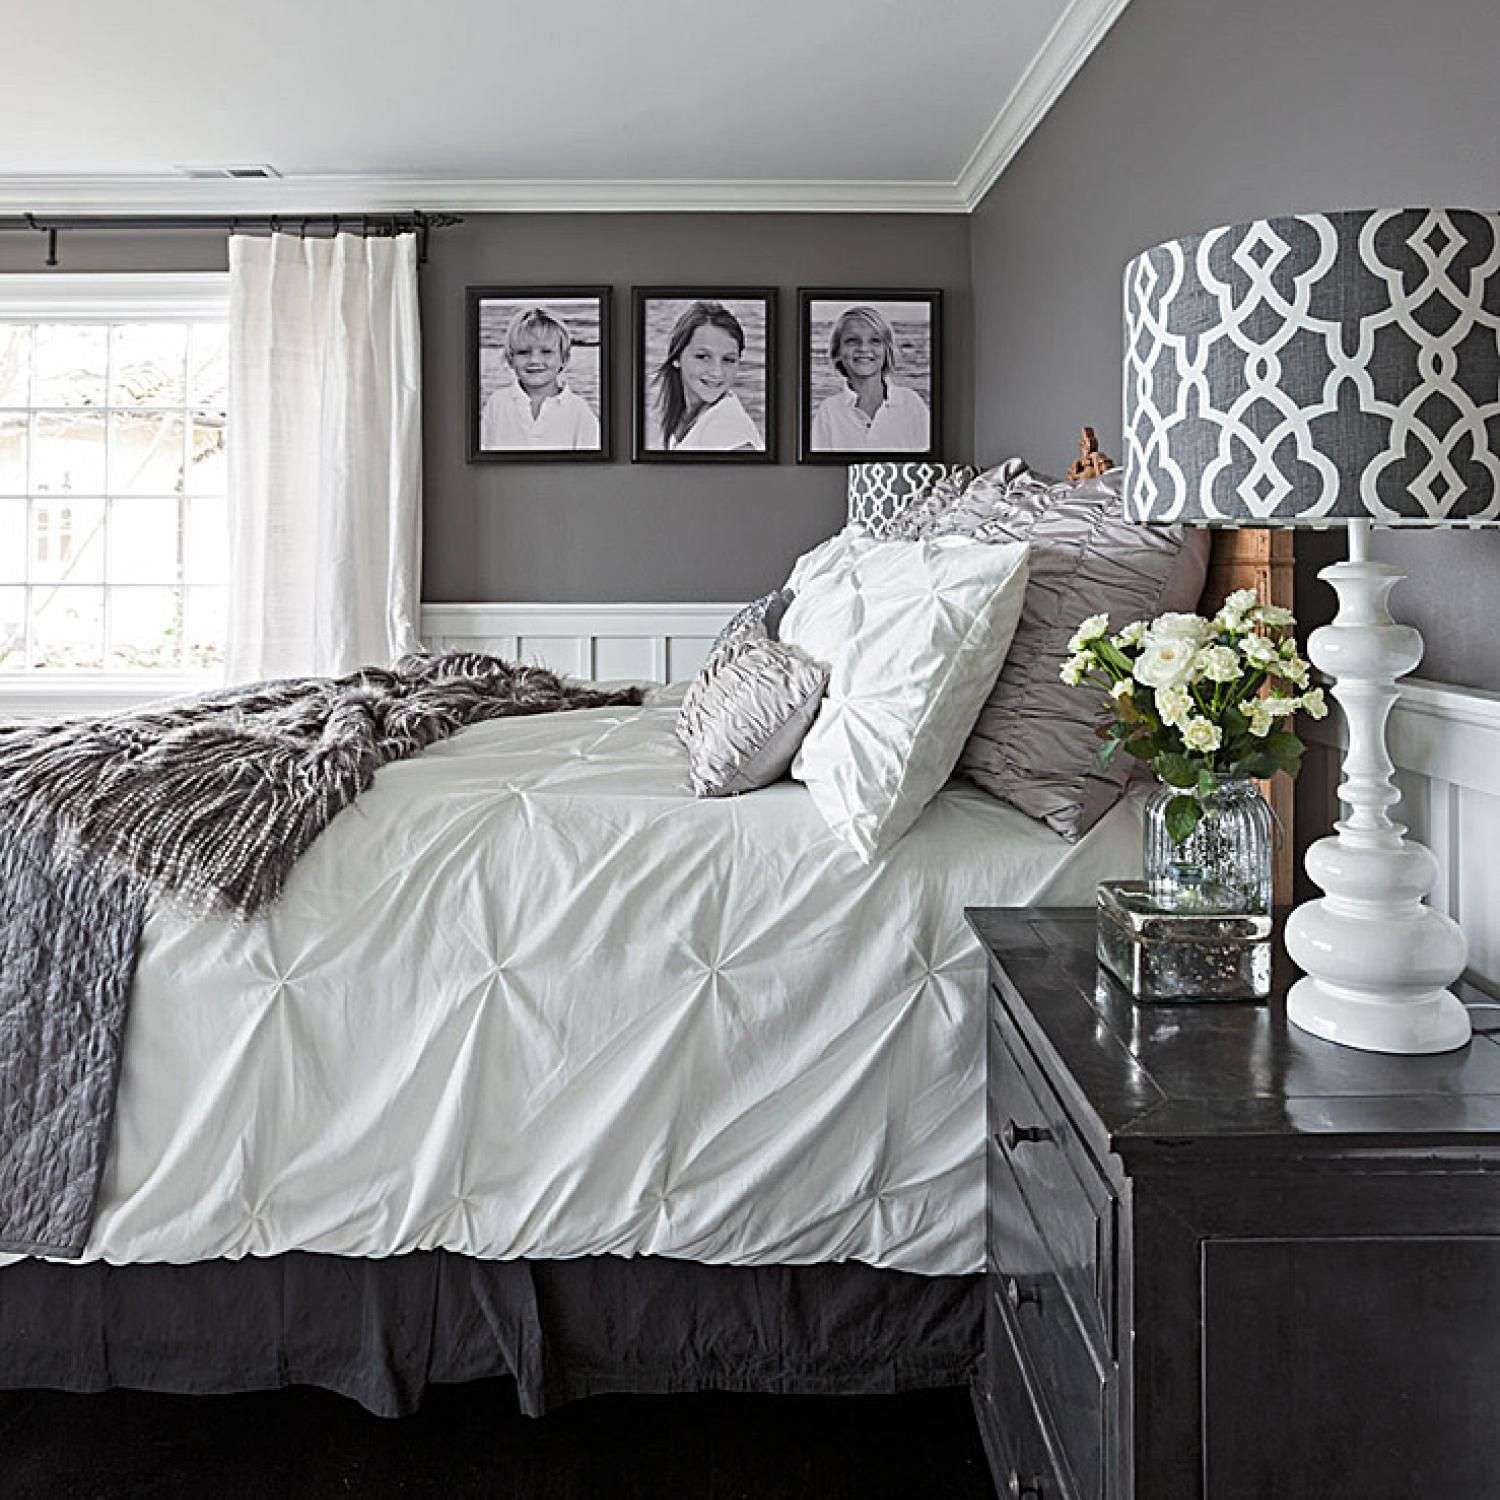 Gorgeous gray and white bedrooms bedrooms pinterest - Grey and white room ideas ...